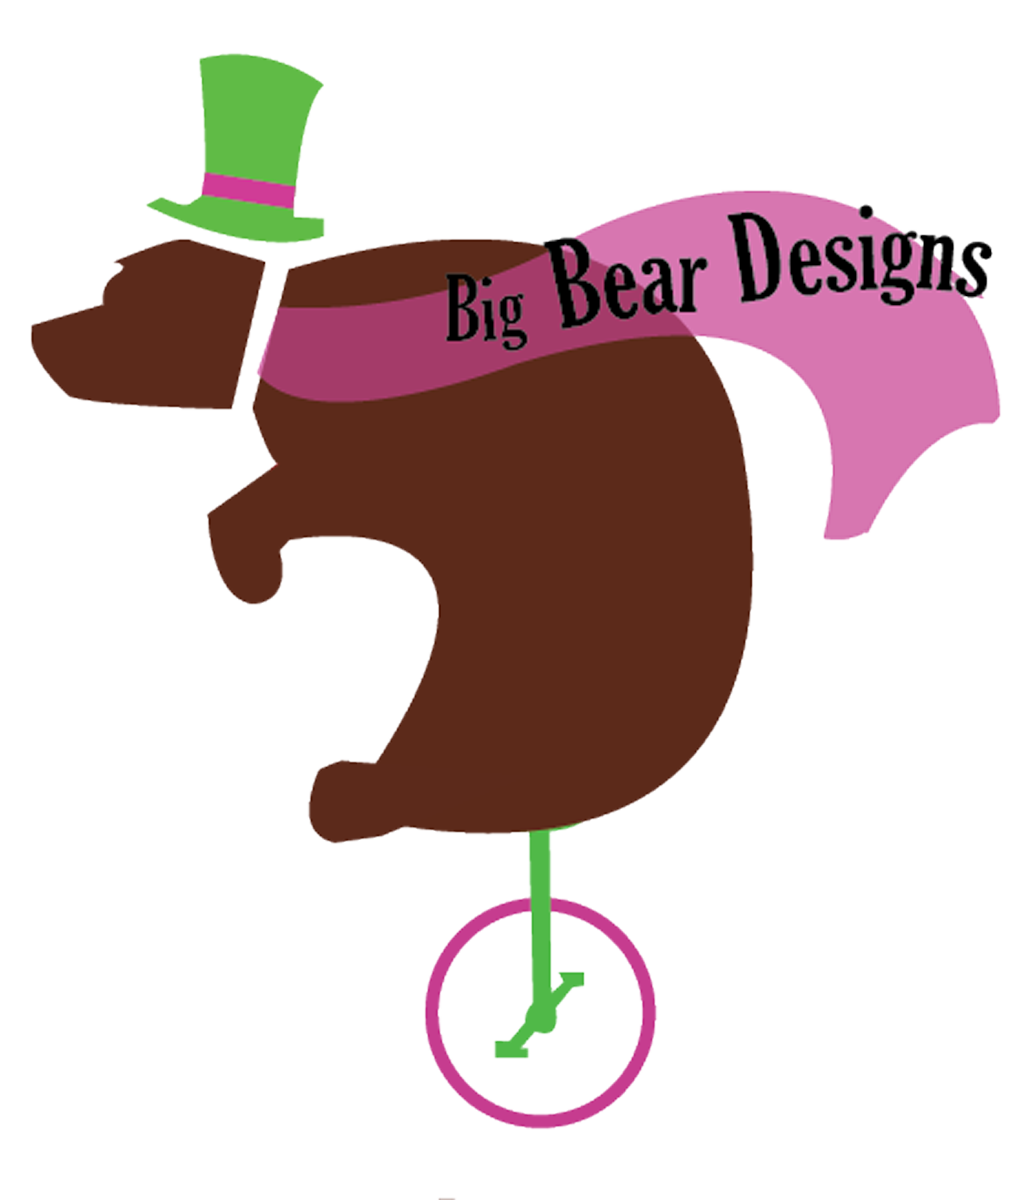 Psychology clipart irrational. Of colours big bear